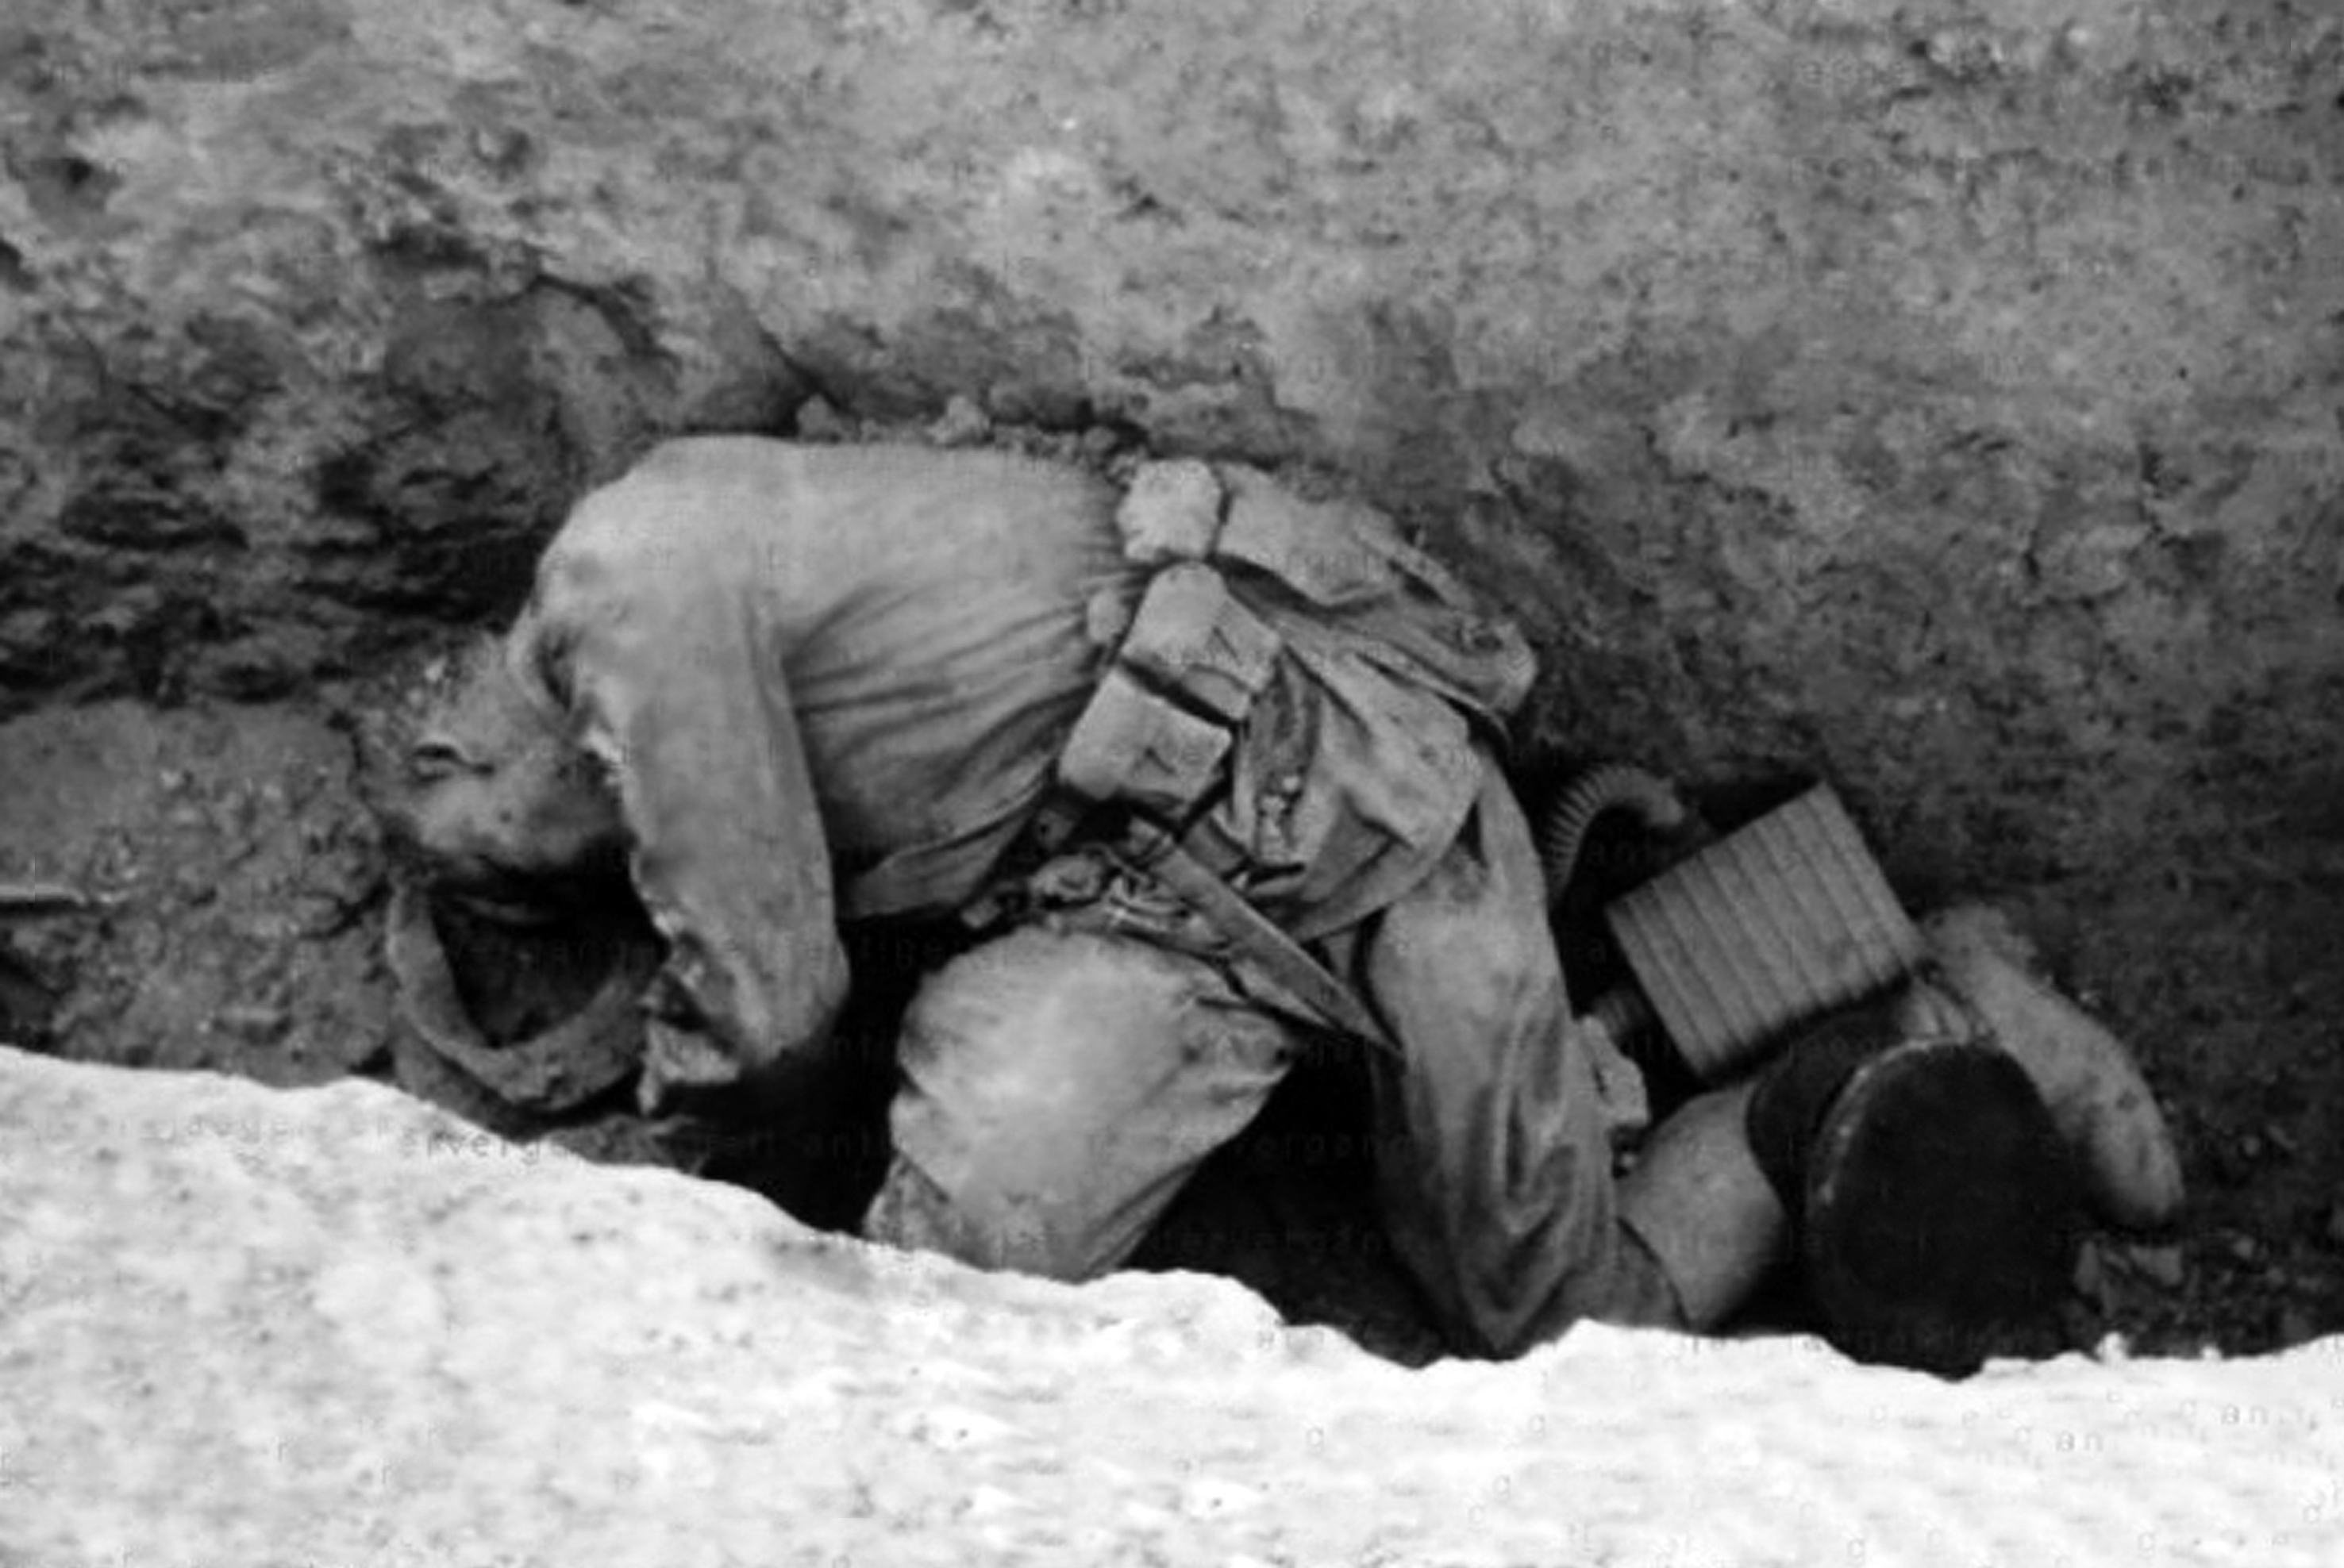 Dead soldier of the Red Army in his trench.